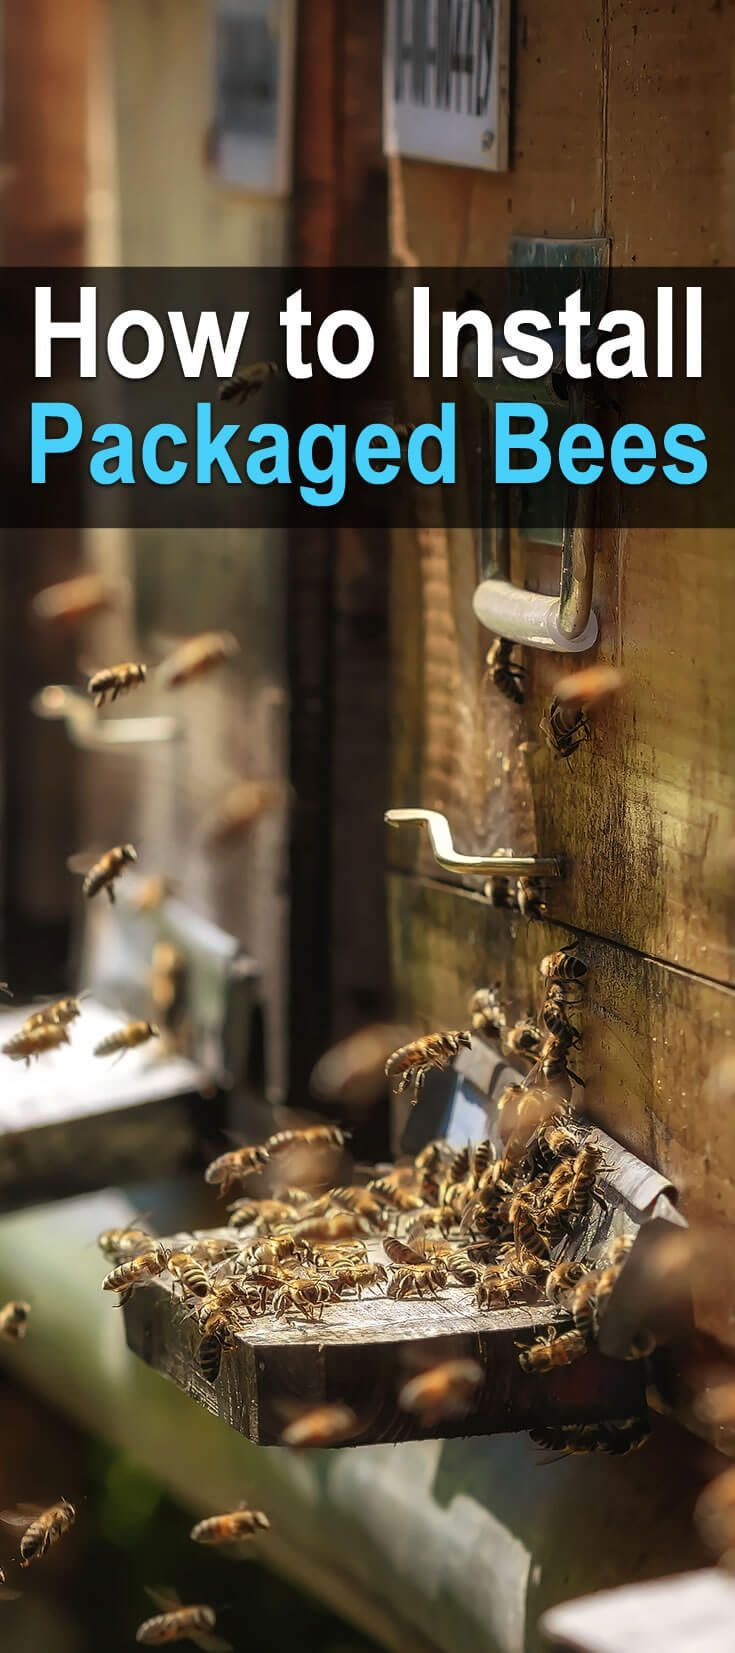 If you are thinking about getting into beekeeping, you should read this article first. You will get an idea of what you will need to keep bees. #beekeepingchecklist